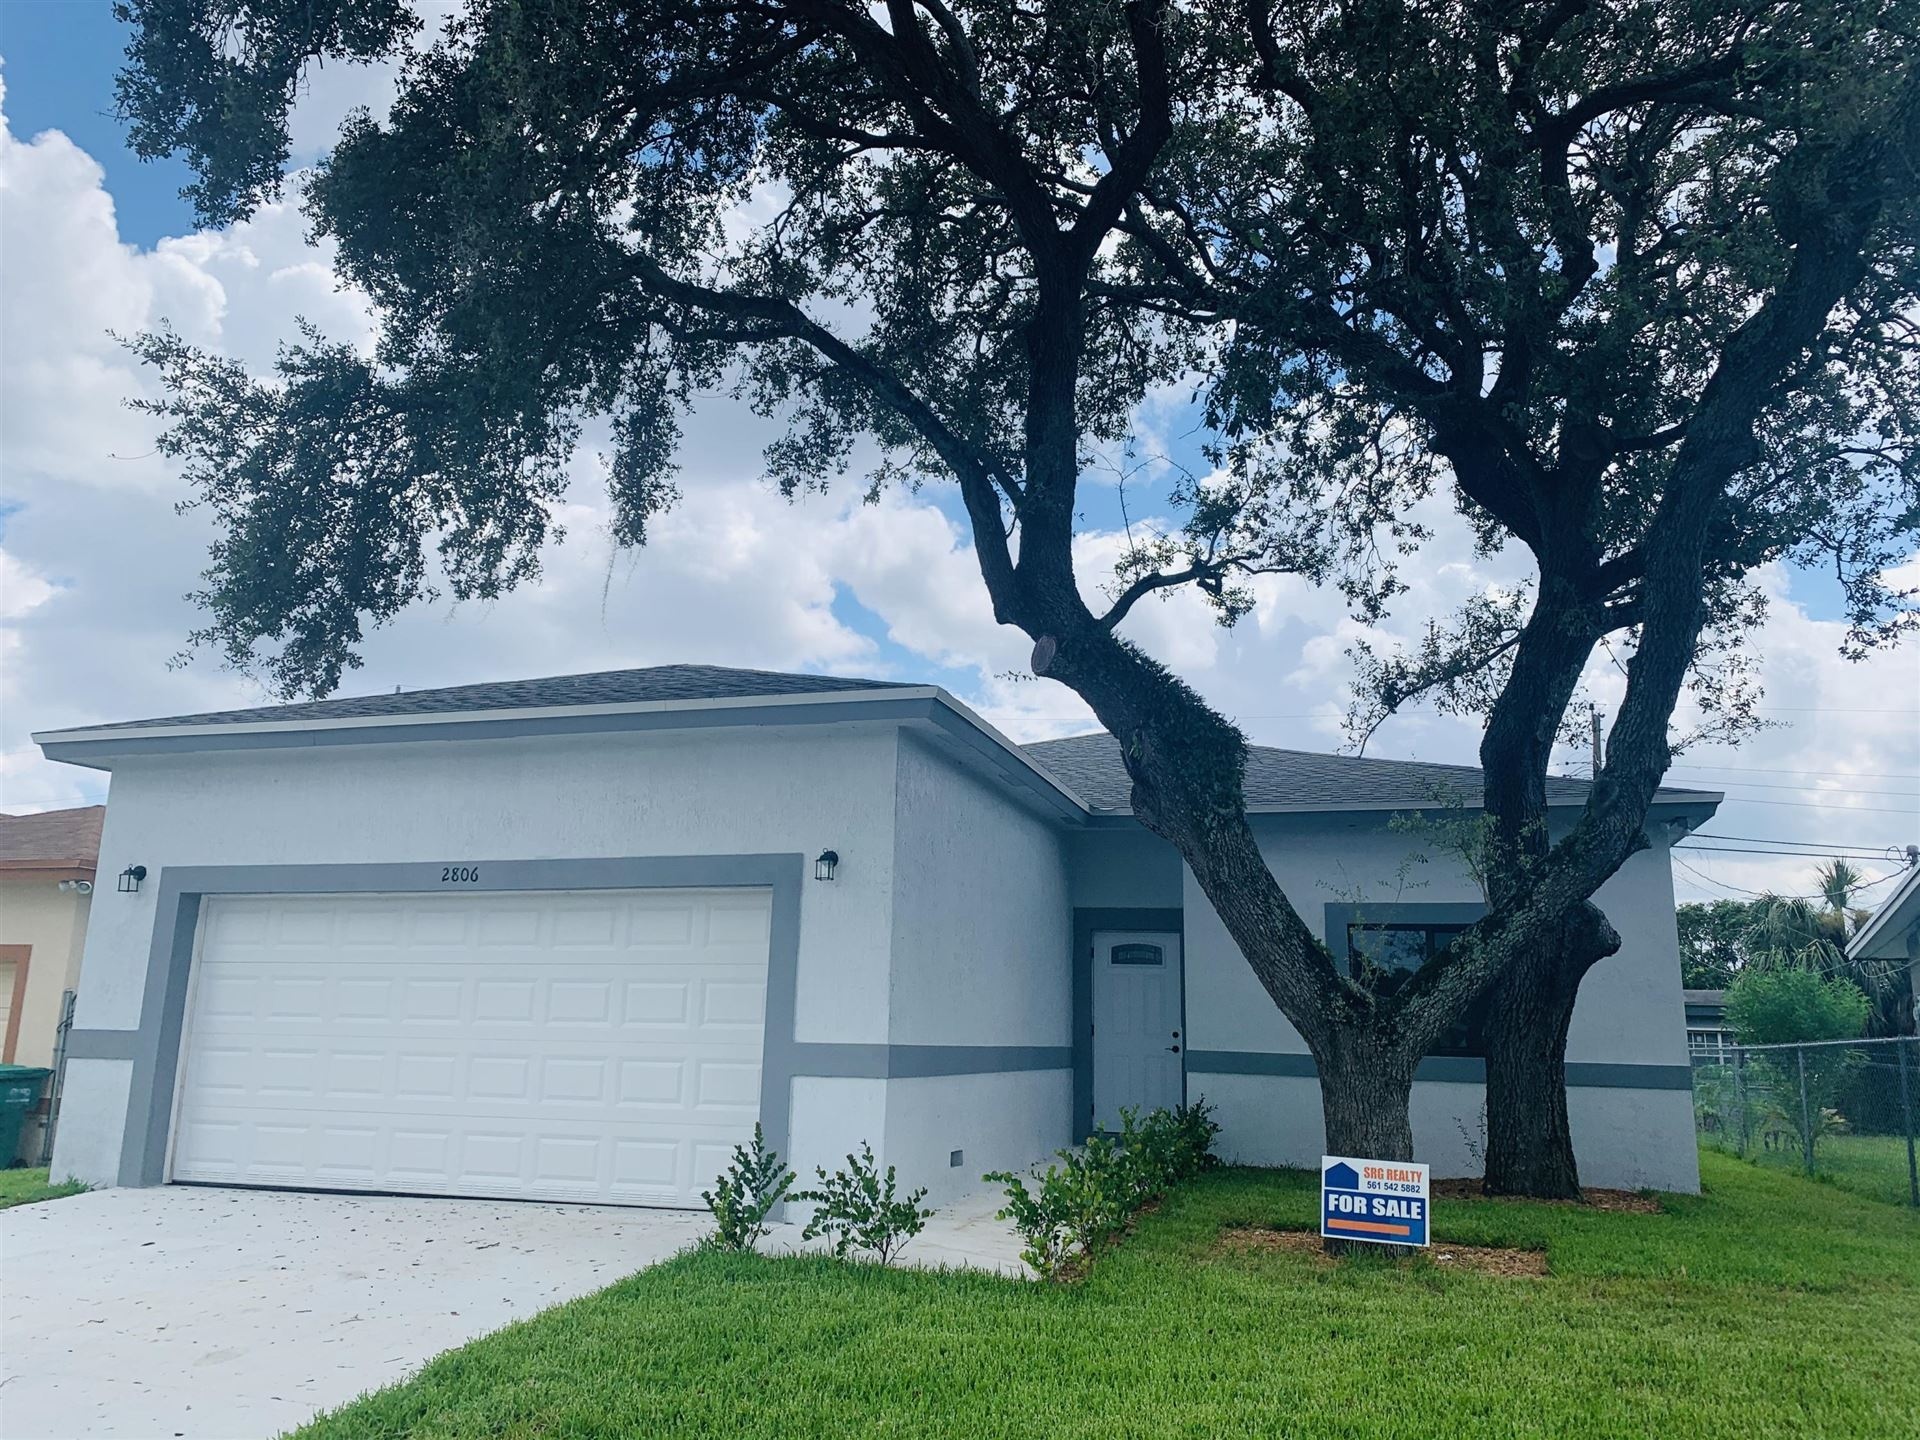 2806 NW 7th Court, Fort Lauderdale, FL 33311 - #: RX-10656456